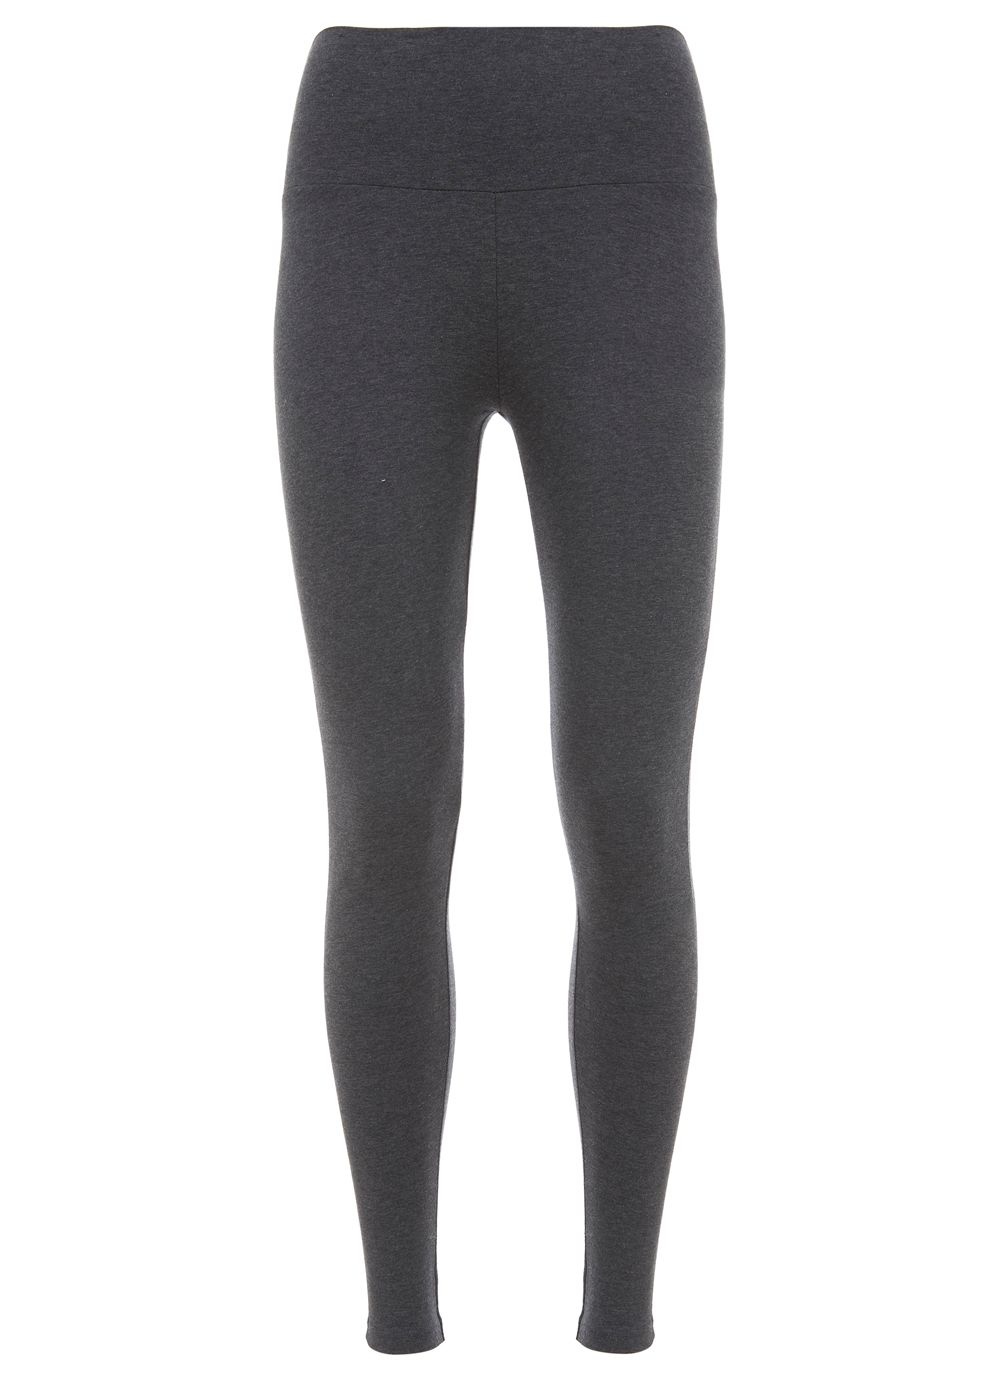 Marl luxury leggings